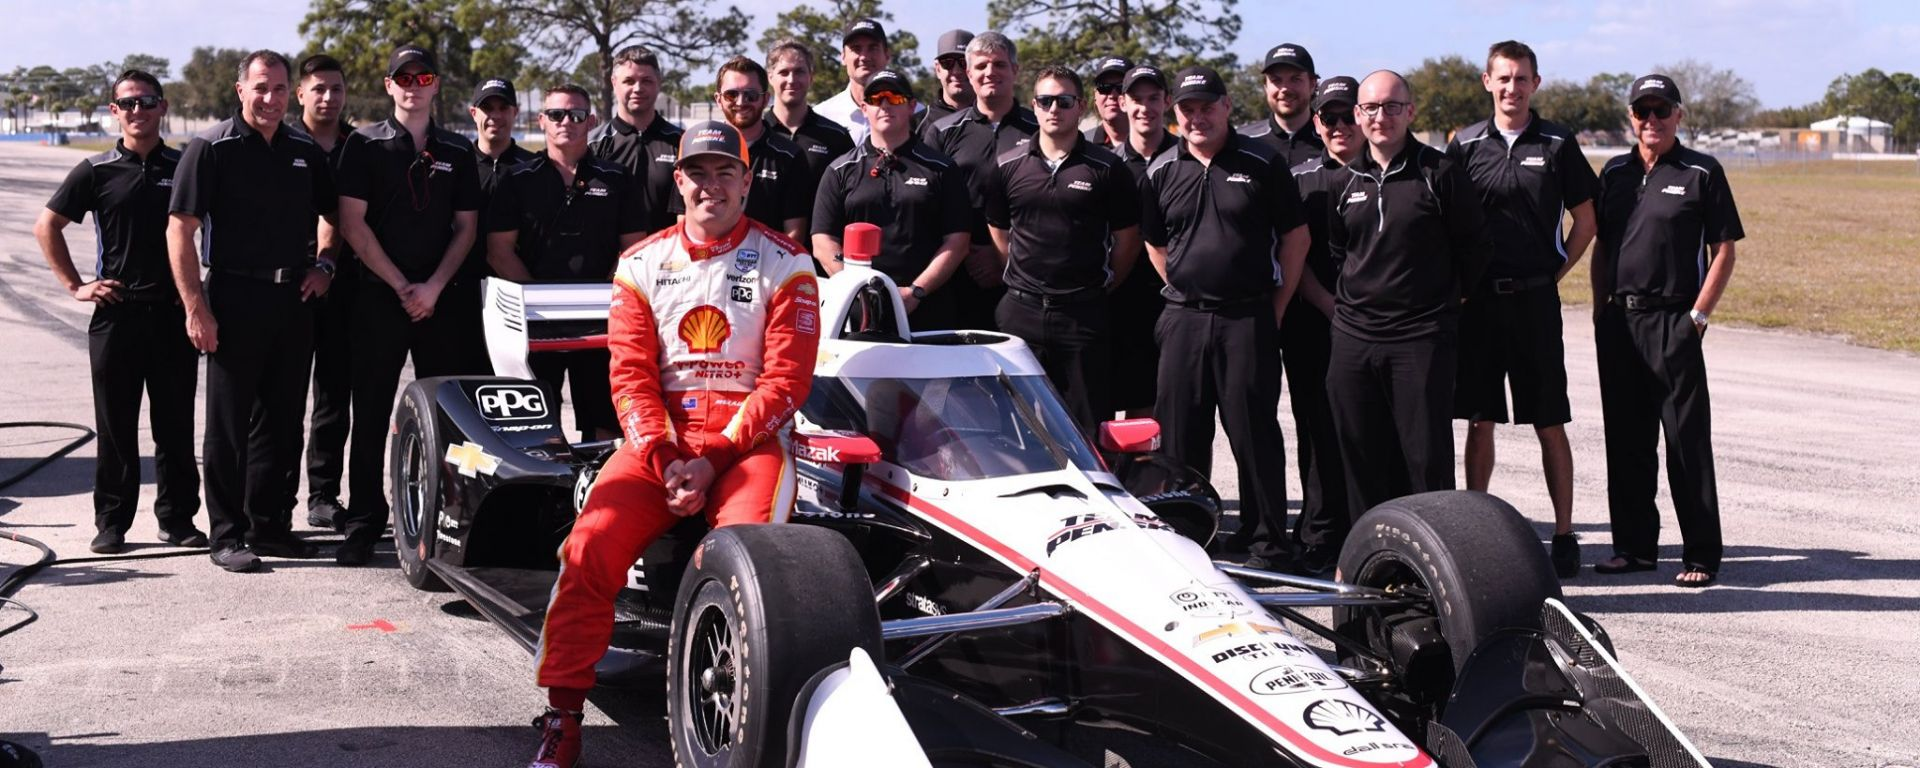 scott mclaughlin , team penske indycar